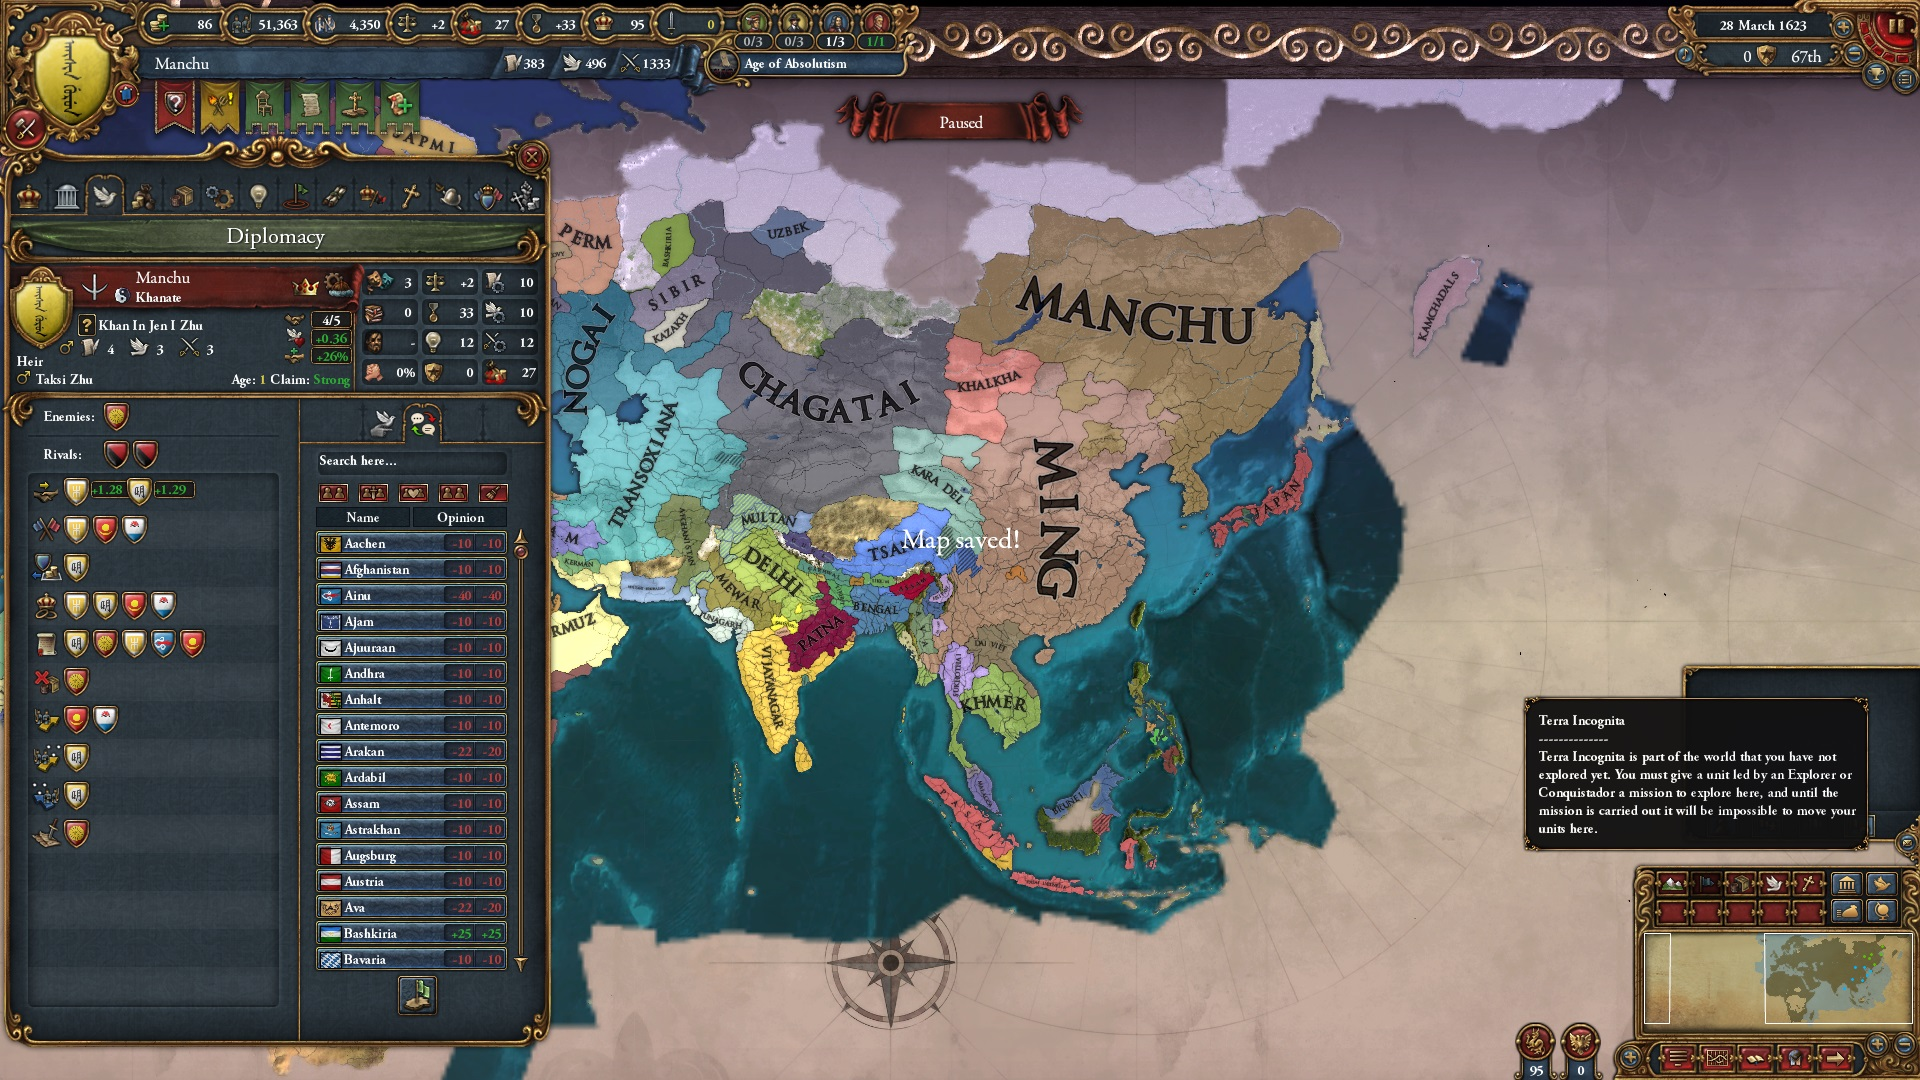 New to Europa Universalis 4, seeking for advice from